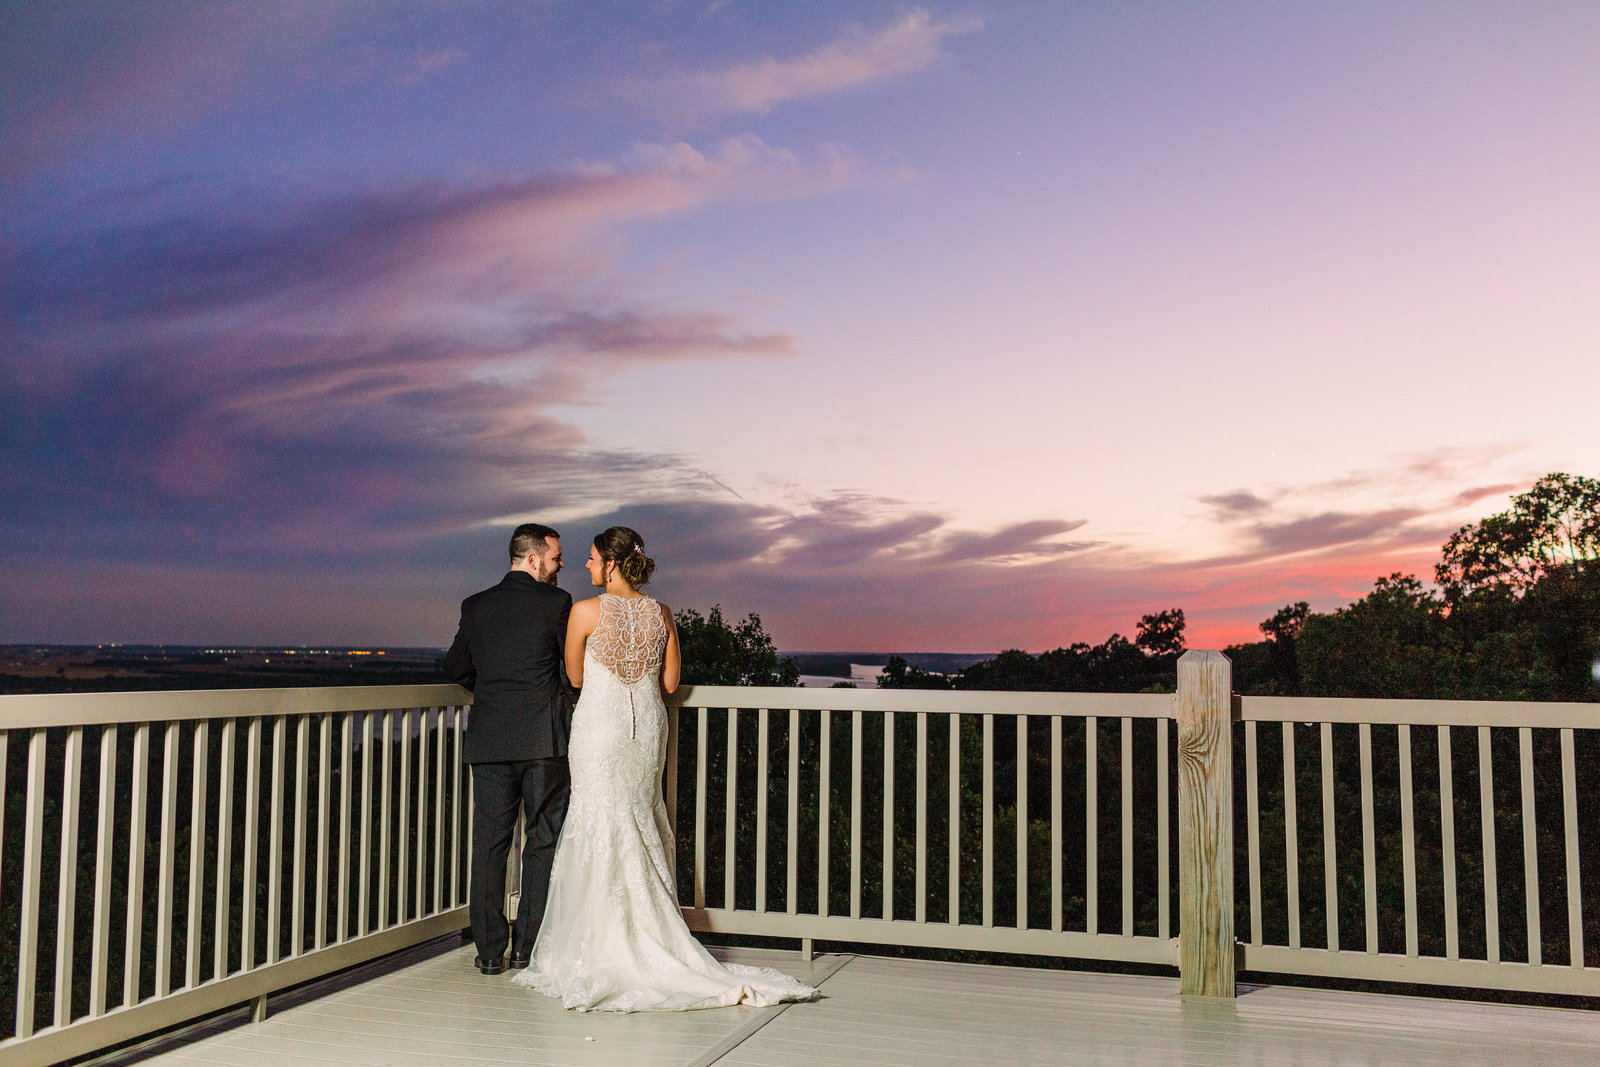 Bride and Groom, Courtney and Daniel, stand looking at a sunset on the Aeries Winery balcony by Jackelynn Noel Photography